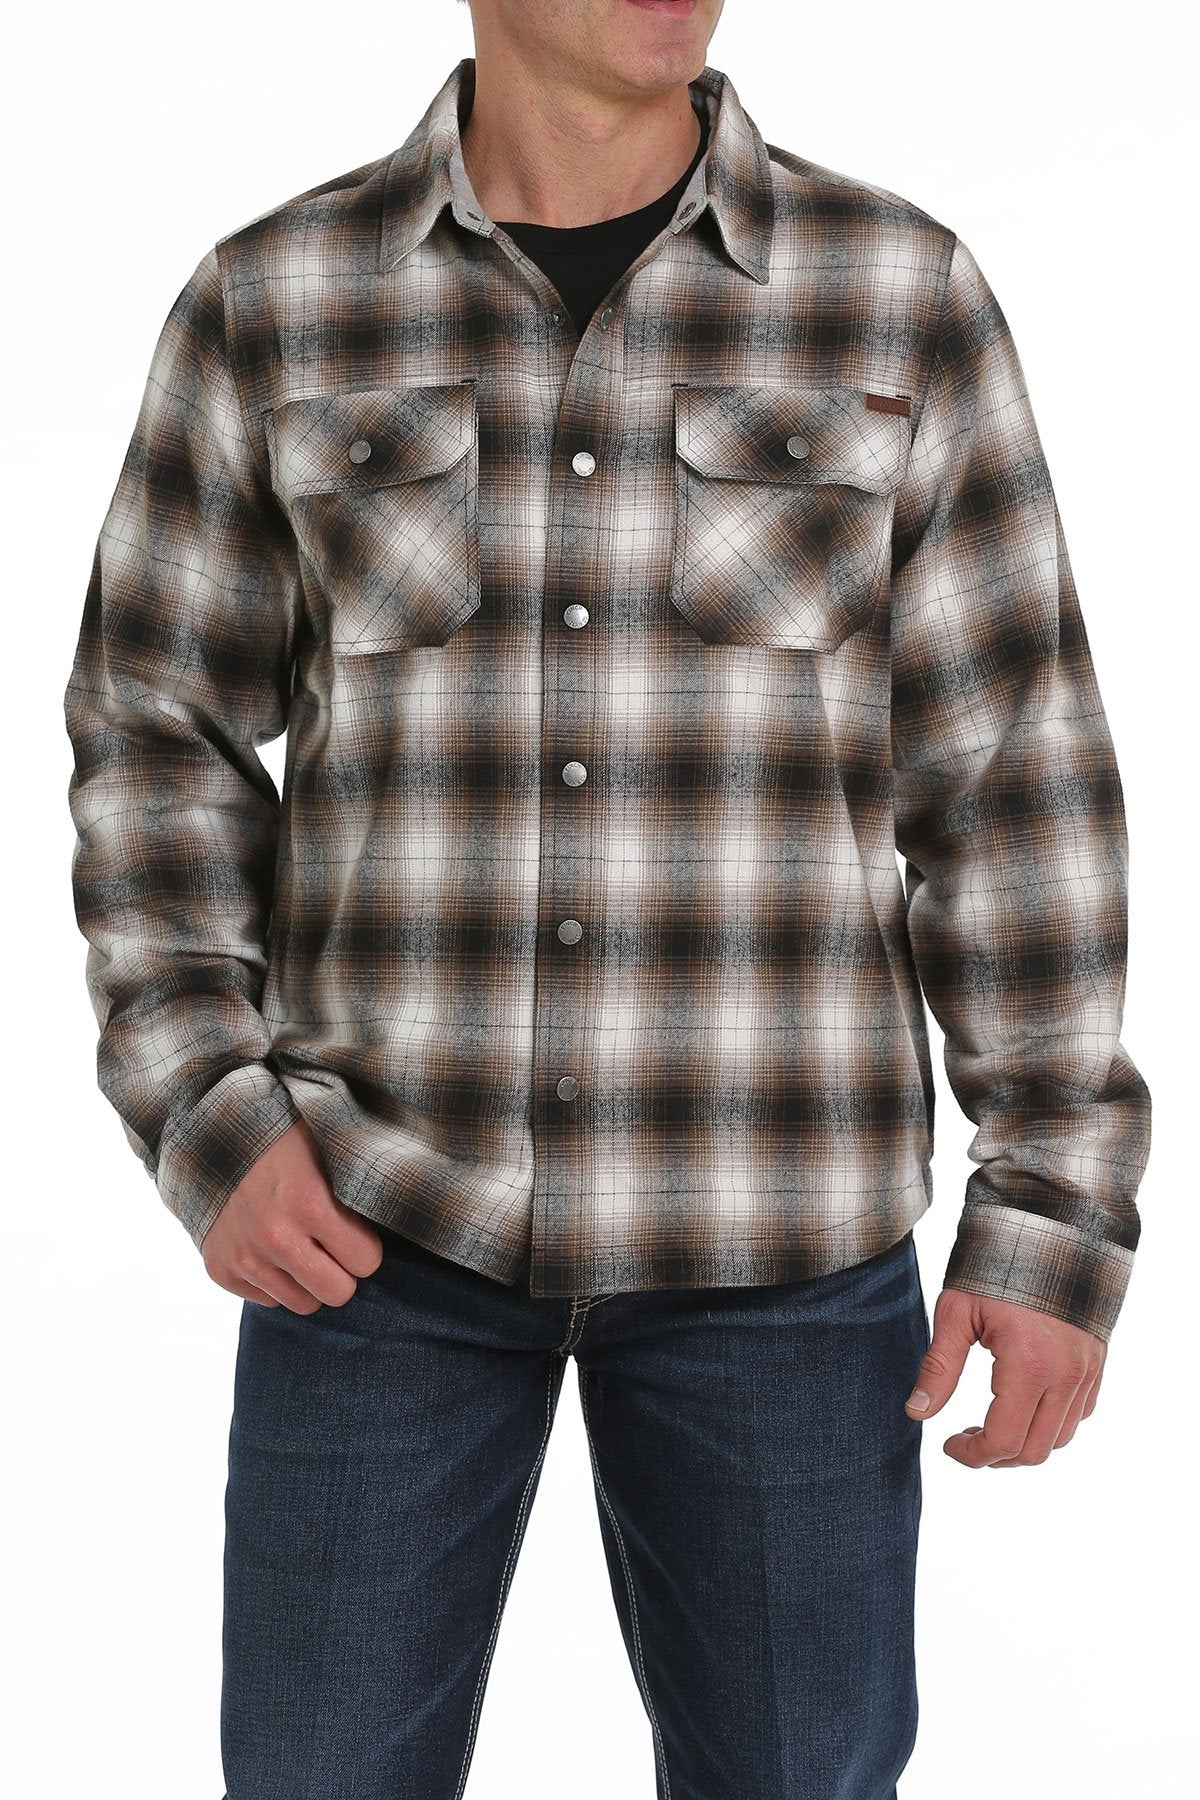 12/1 MENS BROWN/BLACK PLAID BRUSHED COTTON TWILL SHIRT JACKET